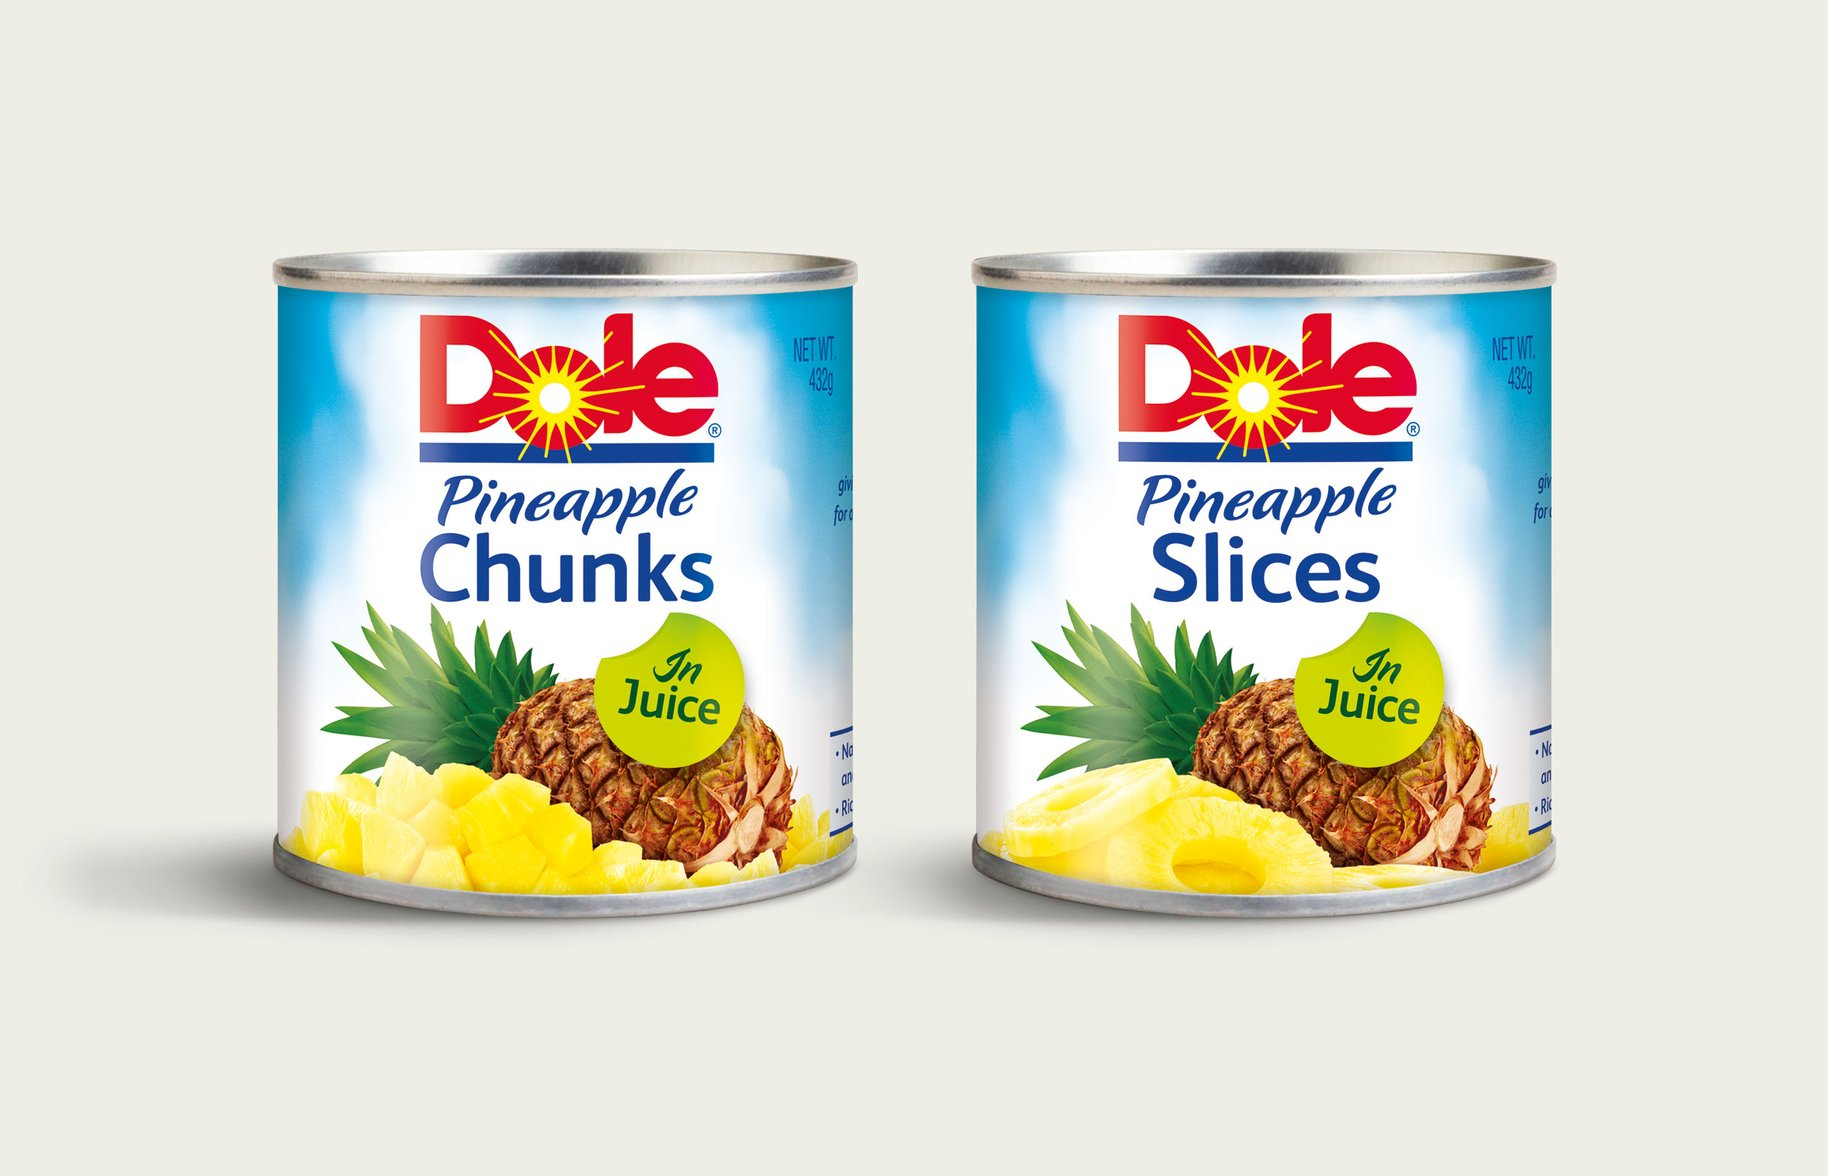 Dole Pineapple Packaging Design before